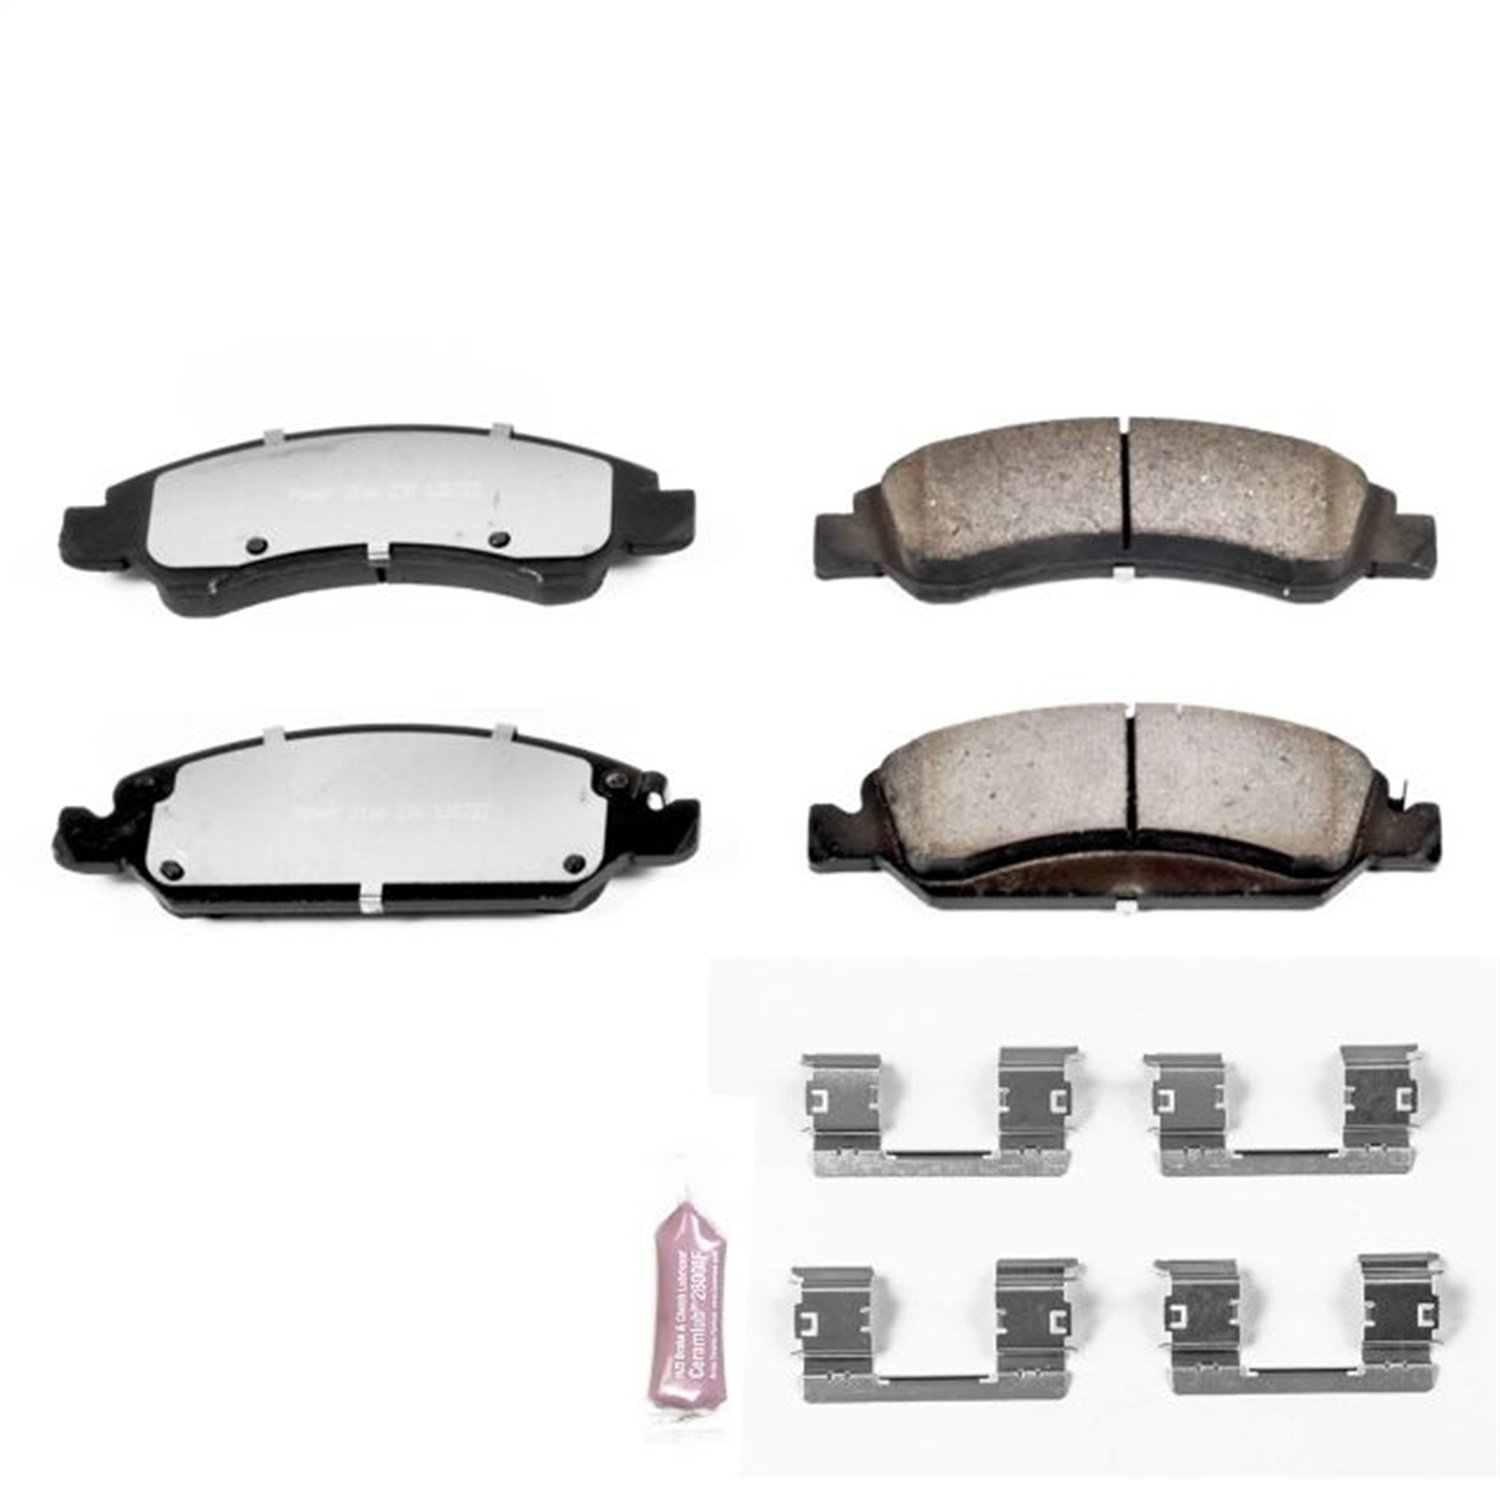 1. Power Stop Z36-1363 Front Z36 Truck and Tow Brake Pads